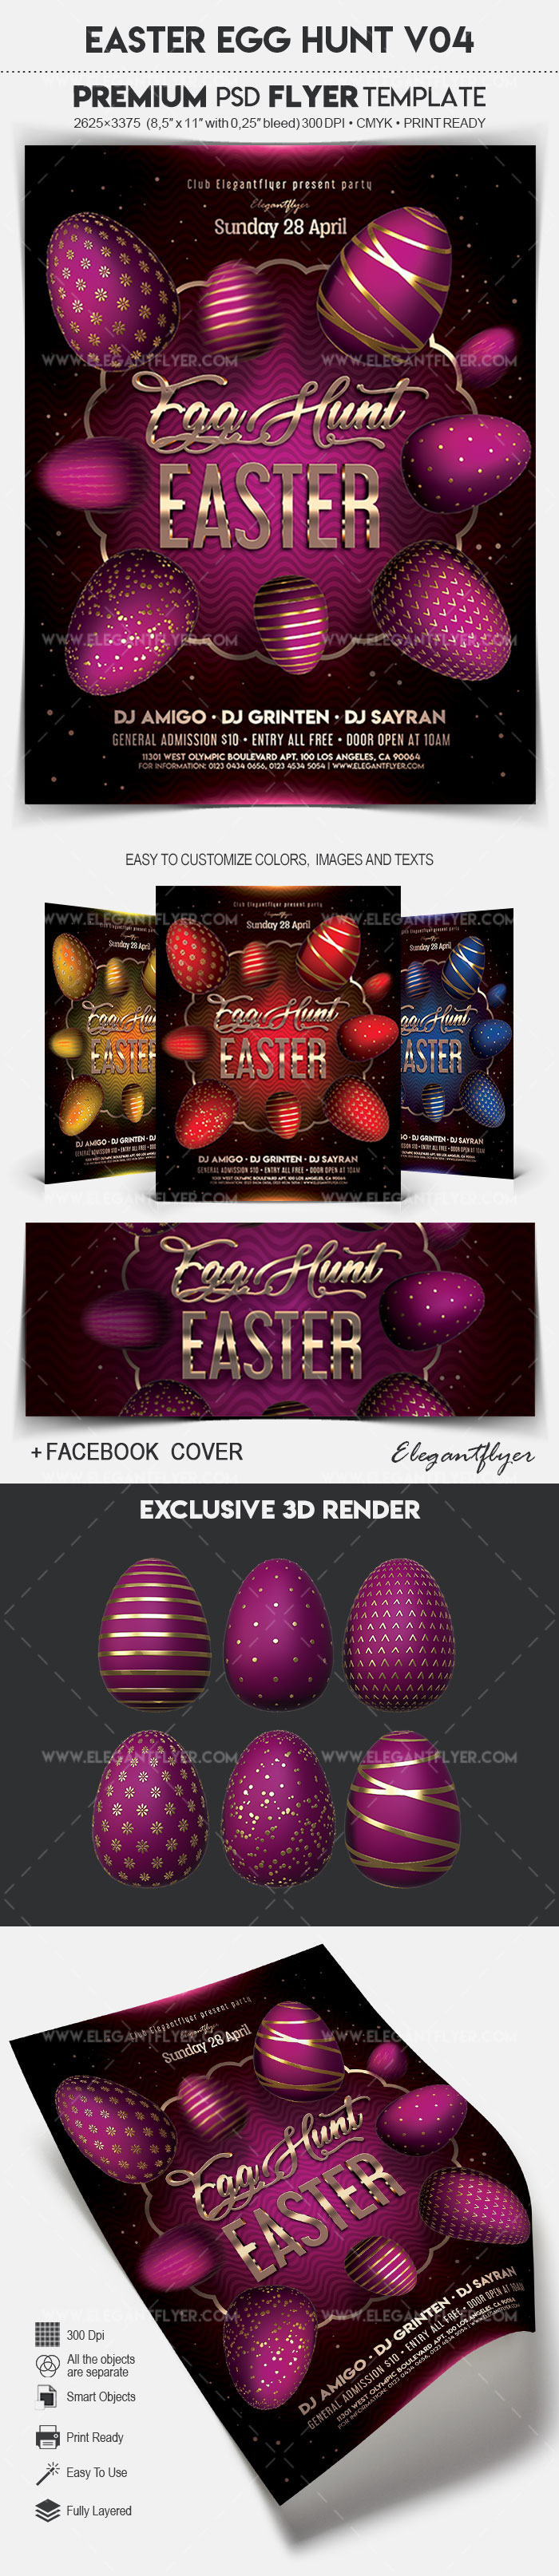 Easter Egg Hunt V04 – Flyer PSD Template